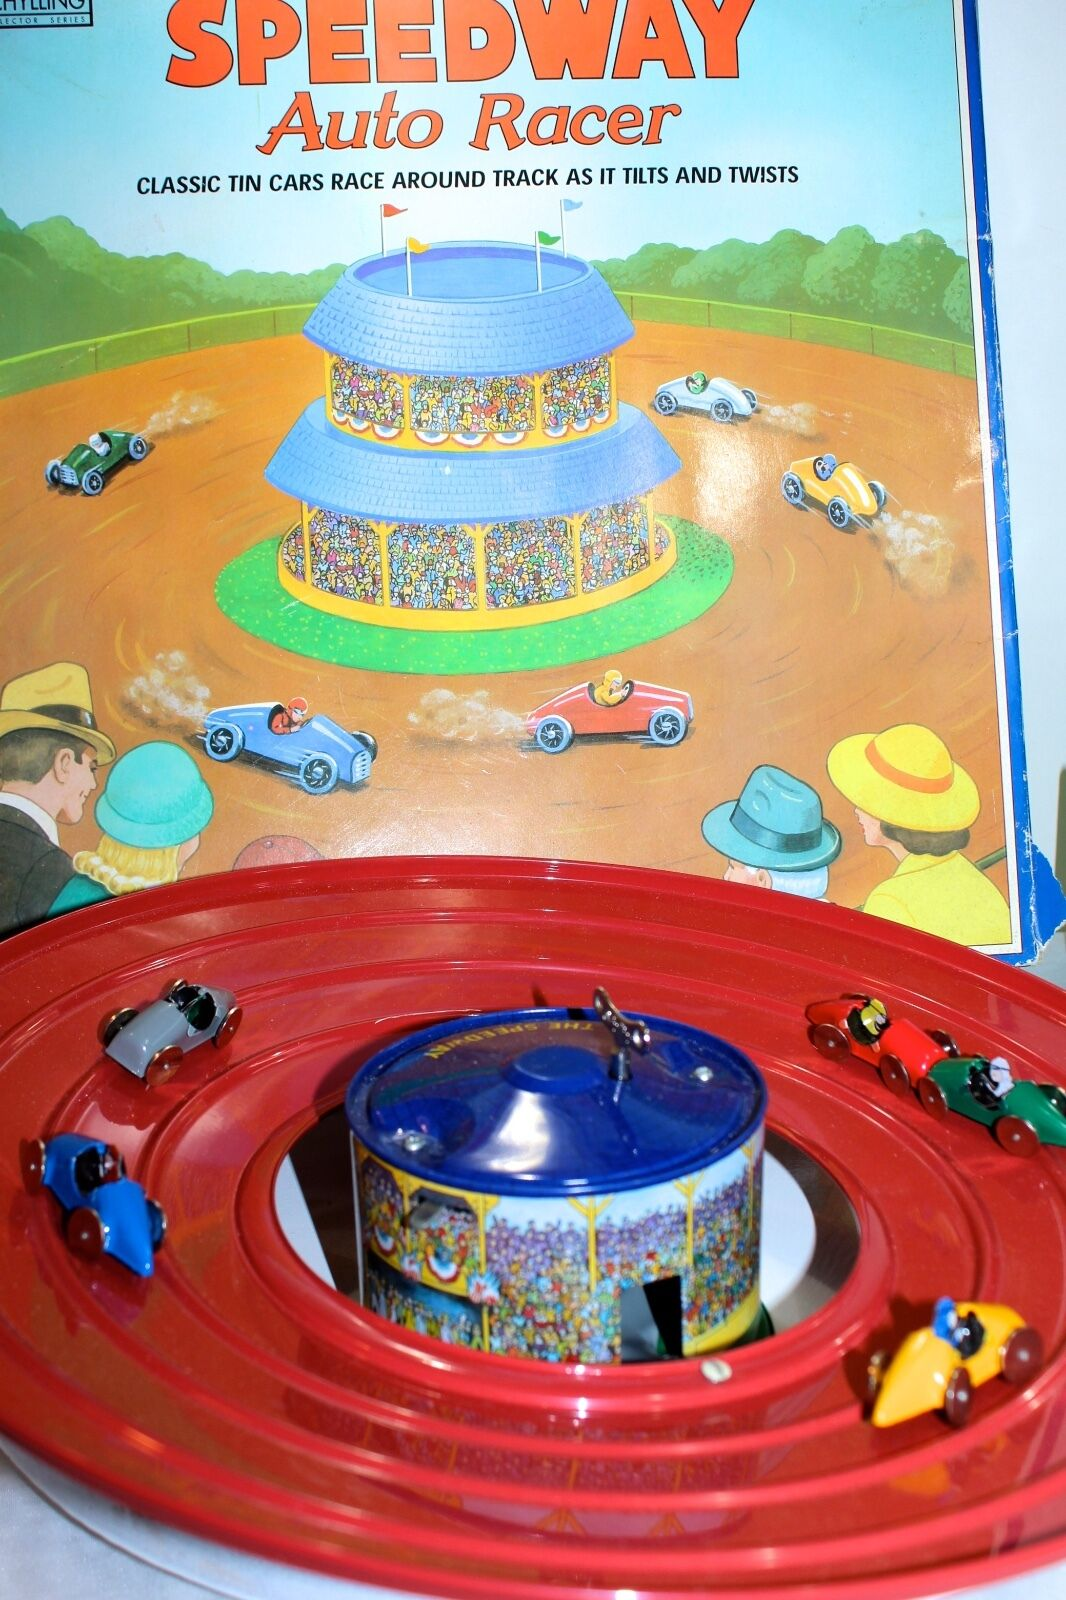 Schylling Auto Racer Collector Series Speedway Speedway Speedway Tin Toy Original Box 5 cars + Key 325803